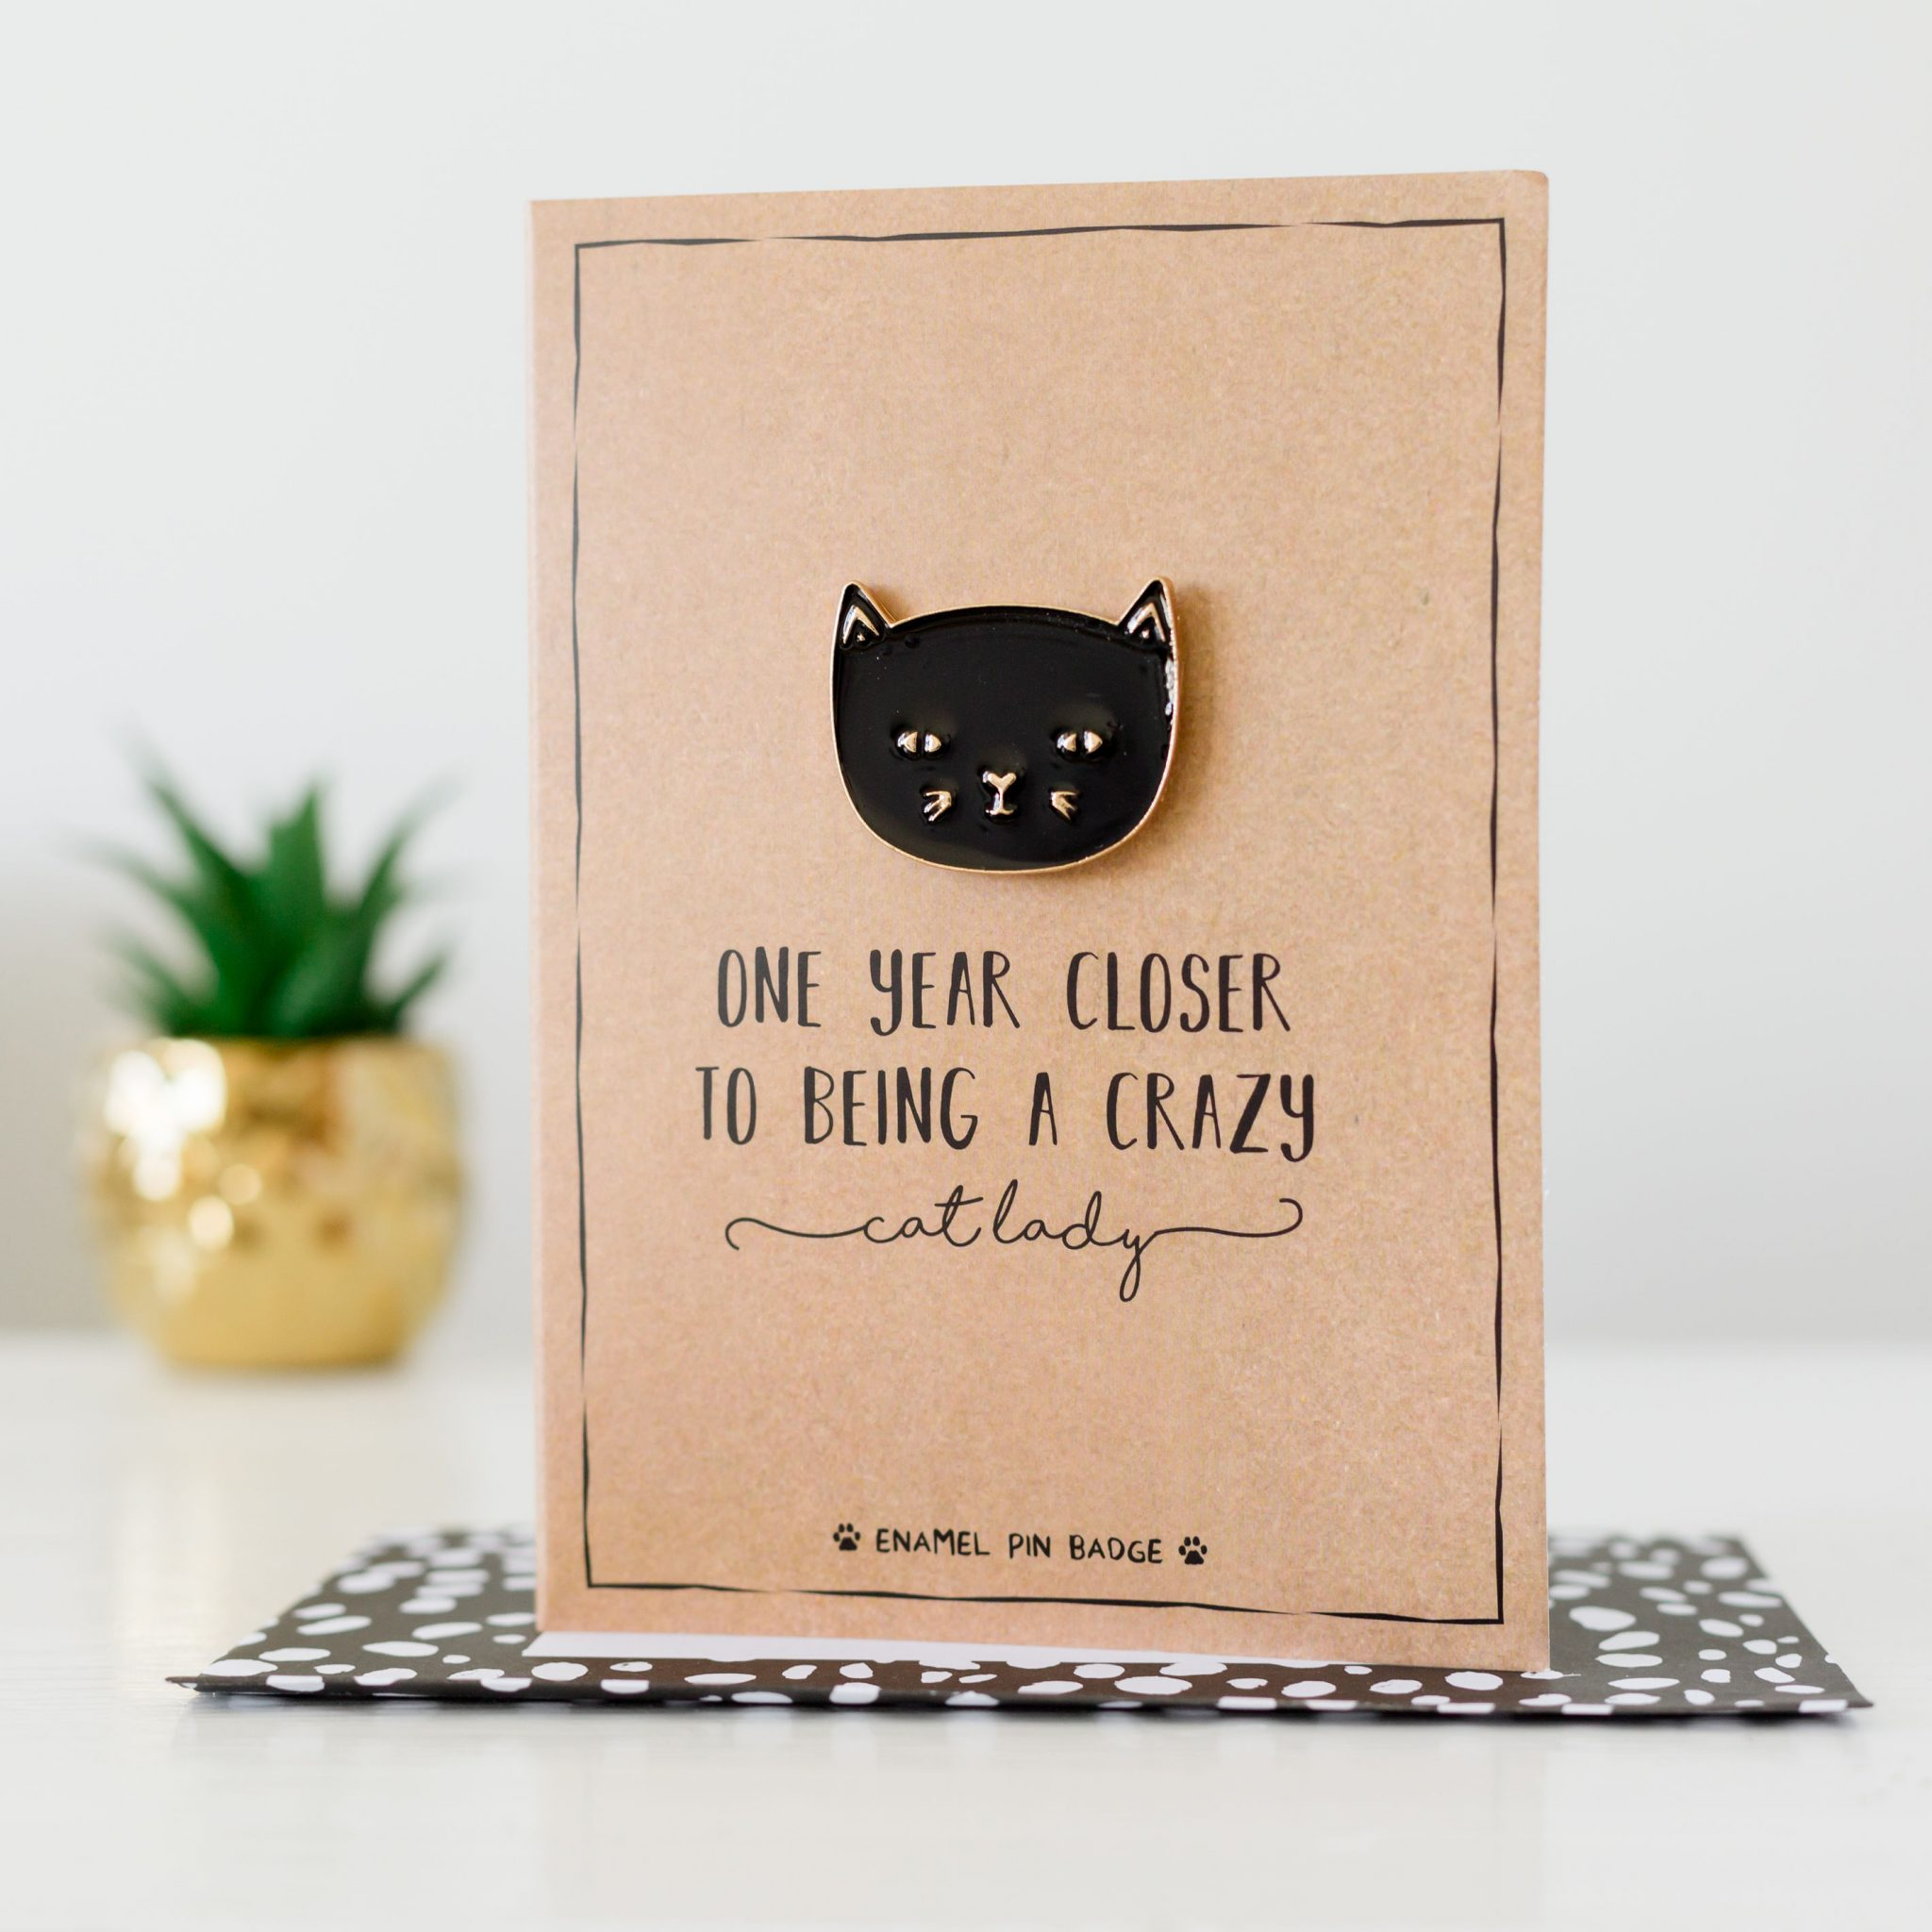 Crazy Cat Lady Card With Pin Badge